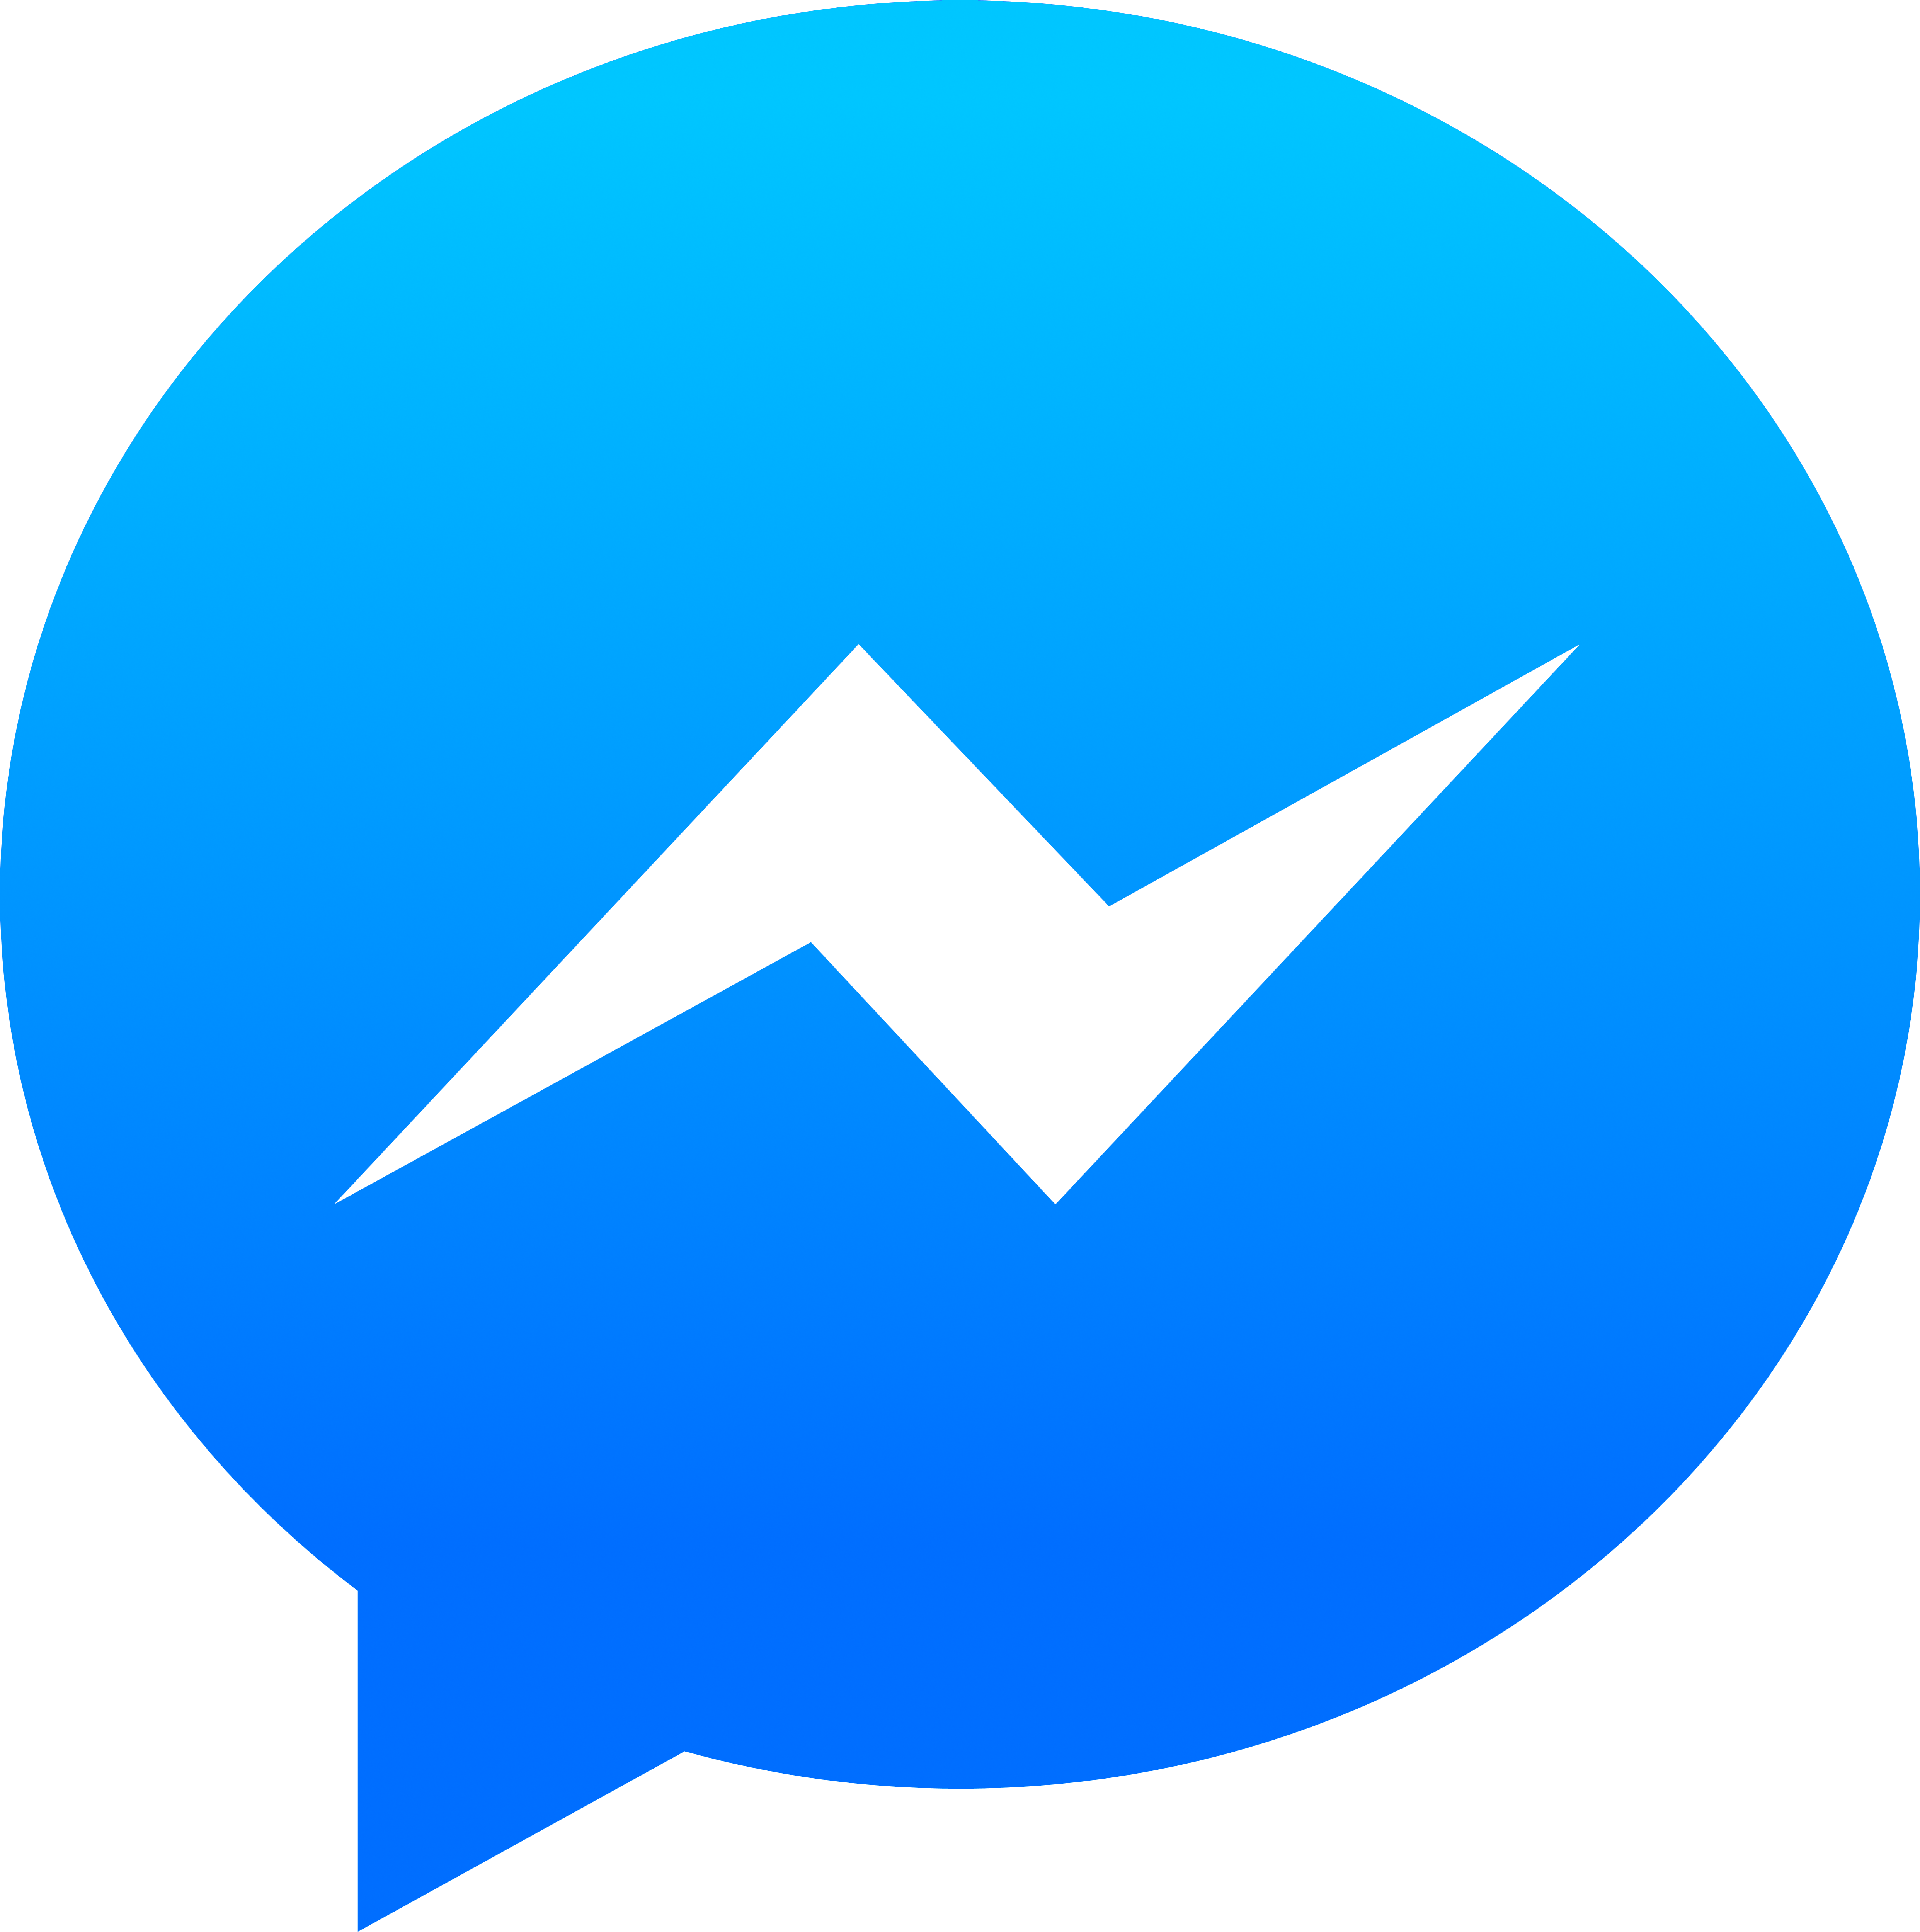 facebook messenger logos download #13161